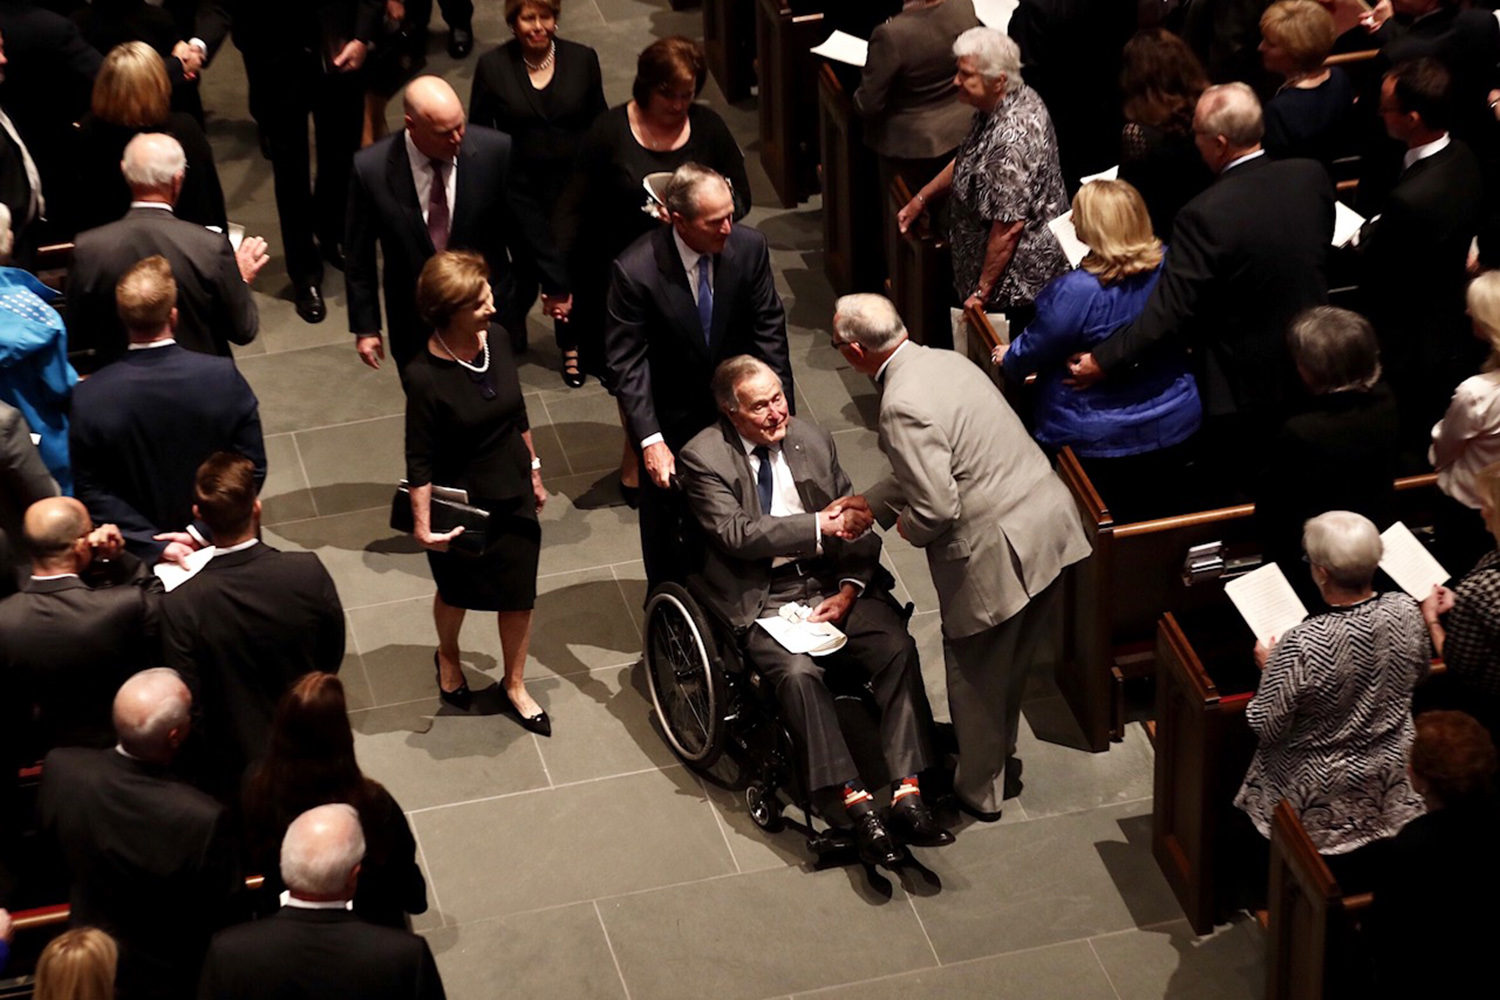 Former President George H.W. Bush accepts condolences as he leaves St. Martin's Episcopal Church after the funeral service for his wife Barbara, in Houston on April 21, 2018. The former first lady will be interred in College Station.